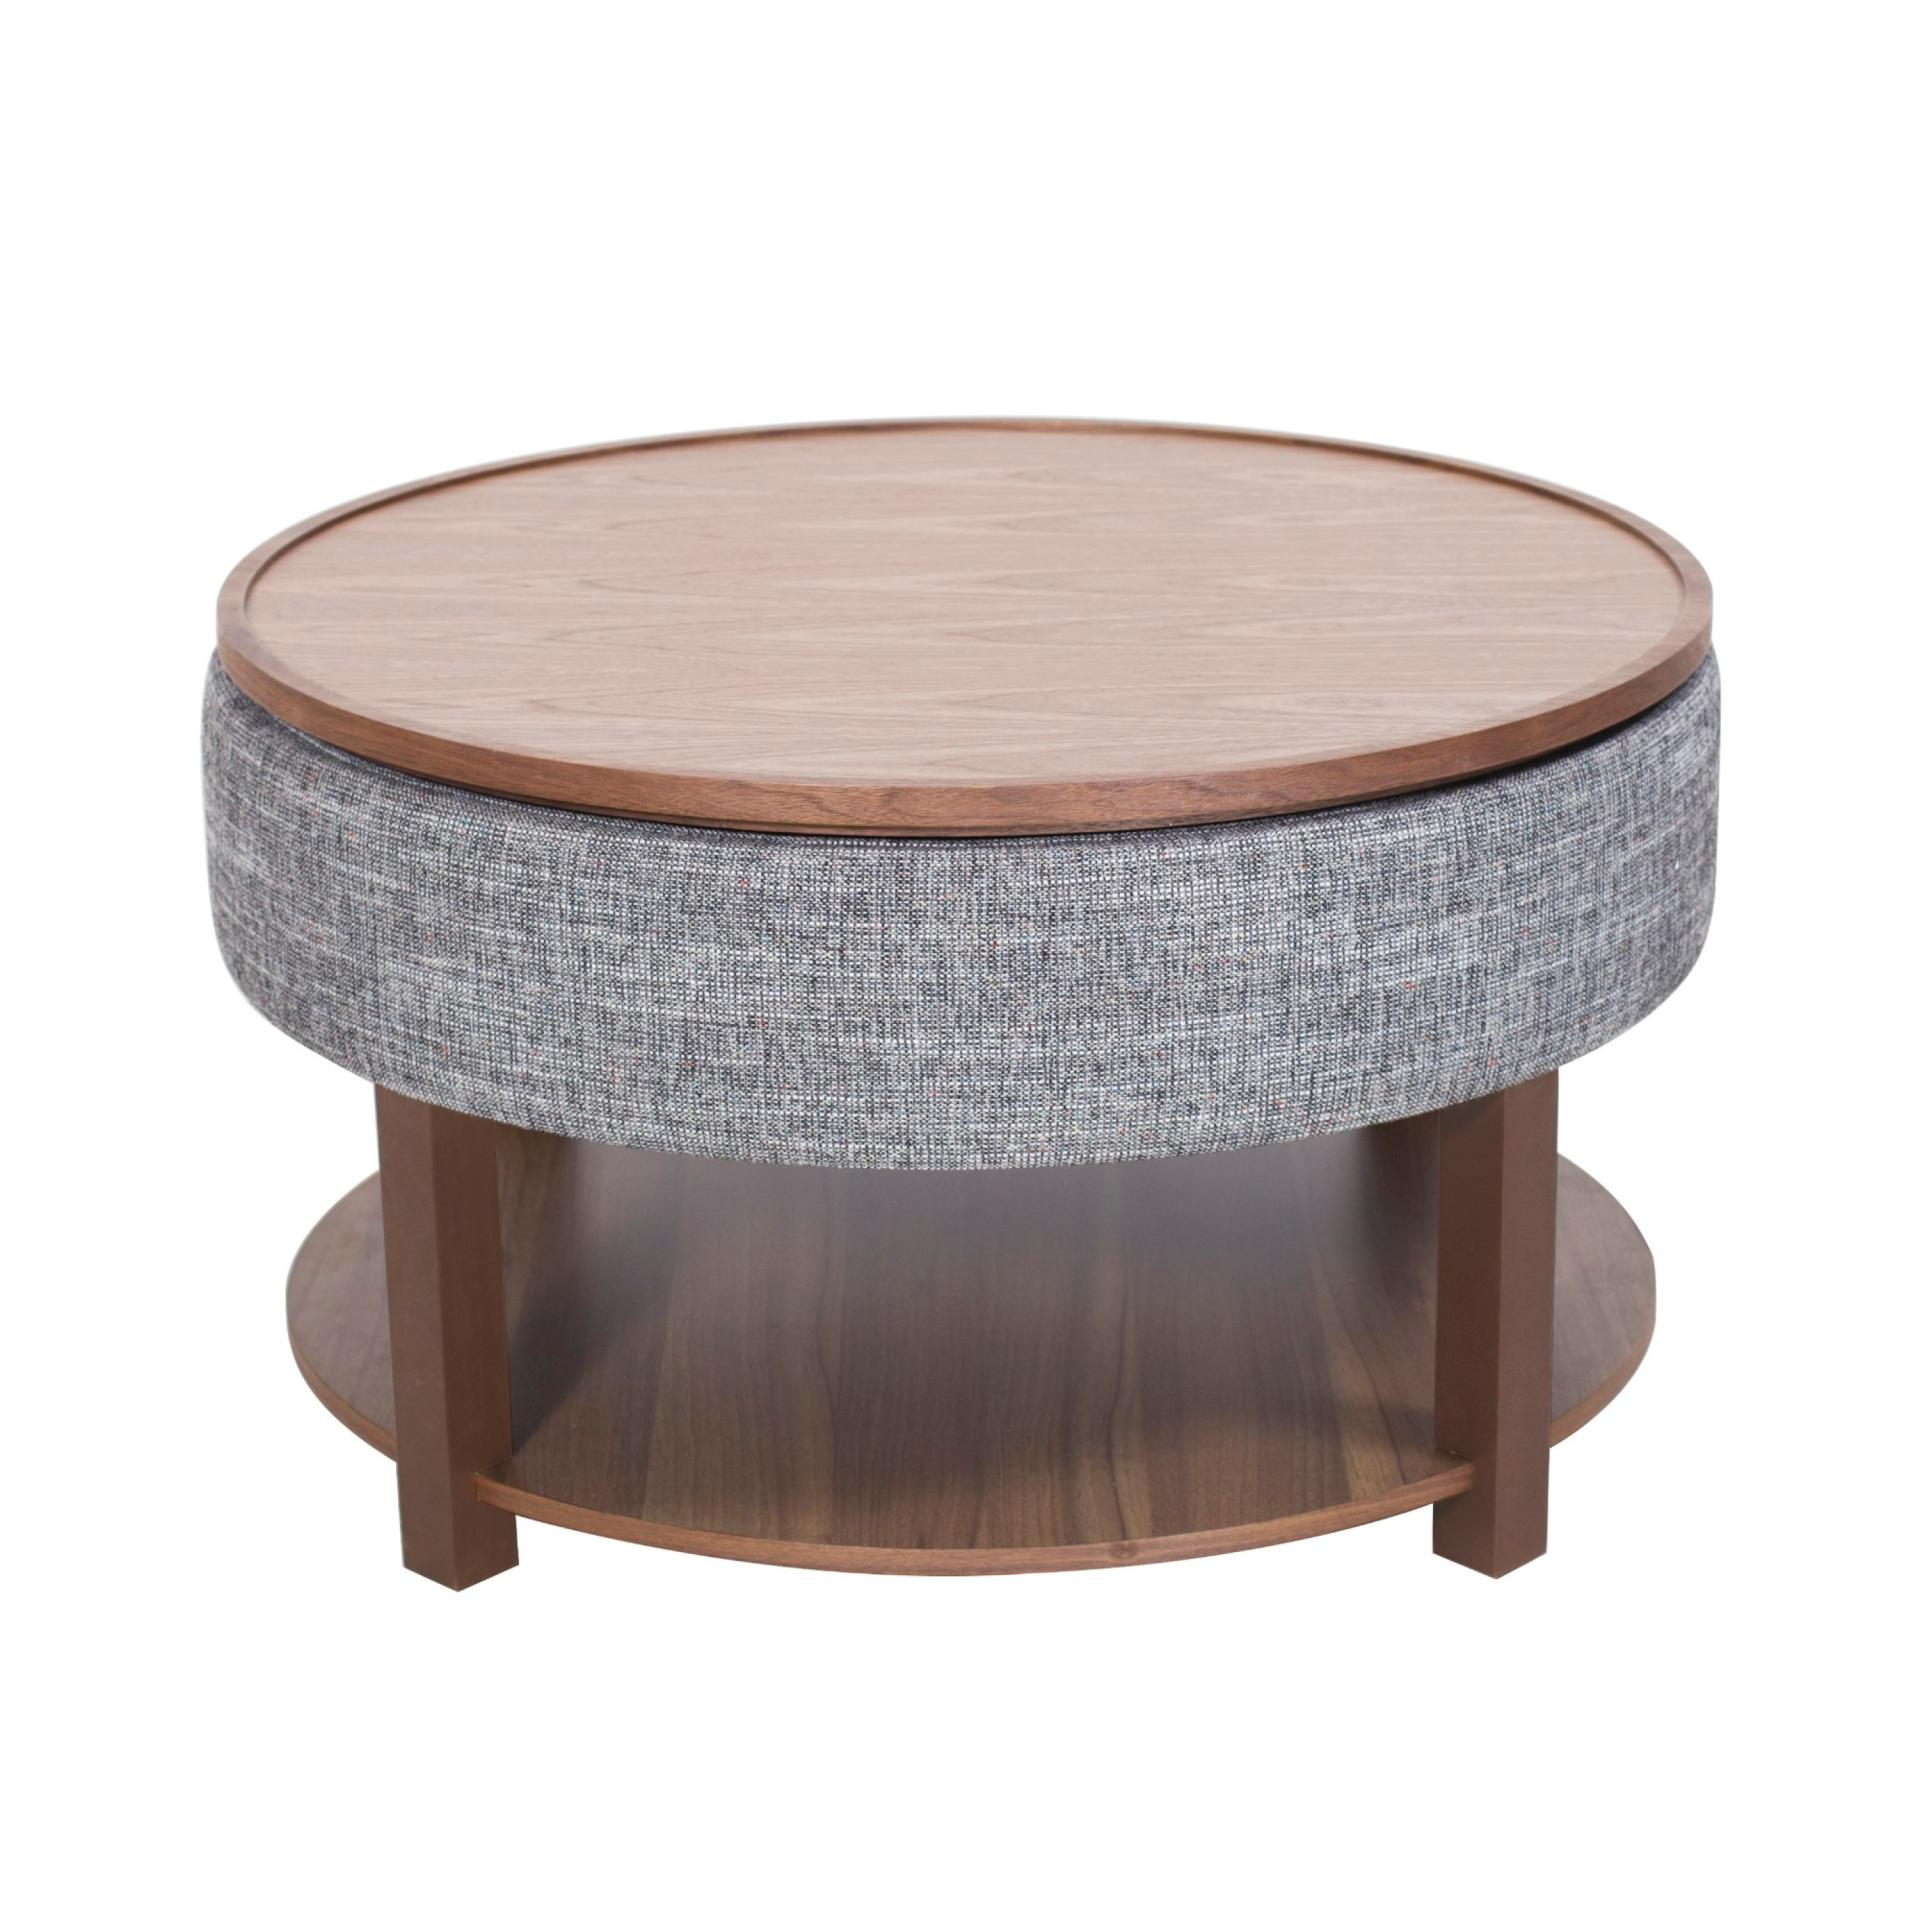 Hooper Storage Coffee Table Natural Ash: Wholesale Lifestyle Furnishings